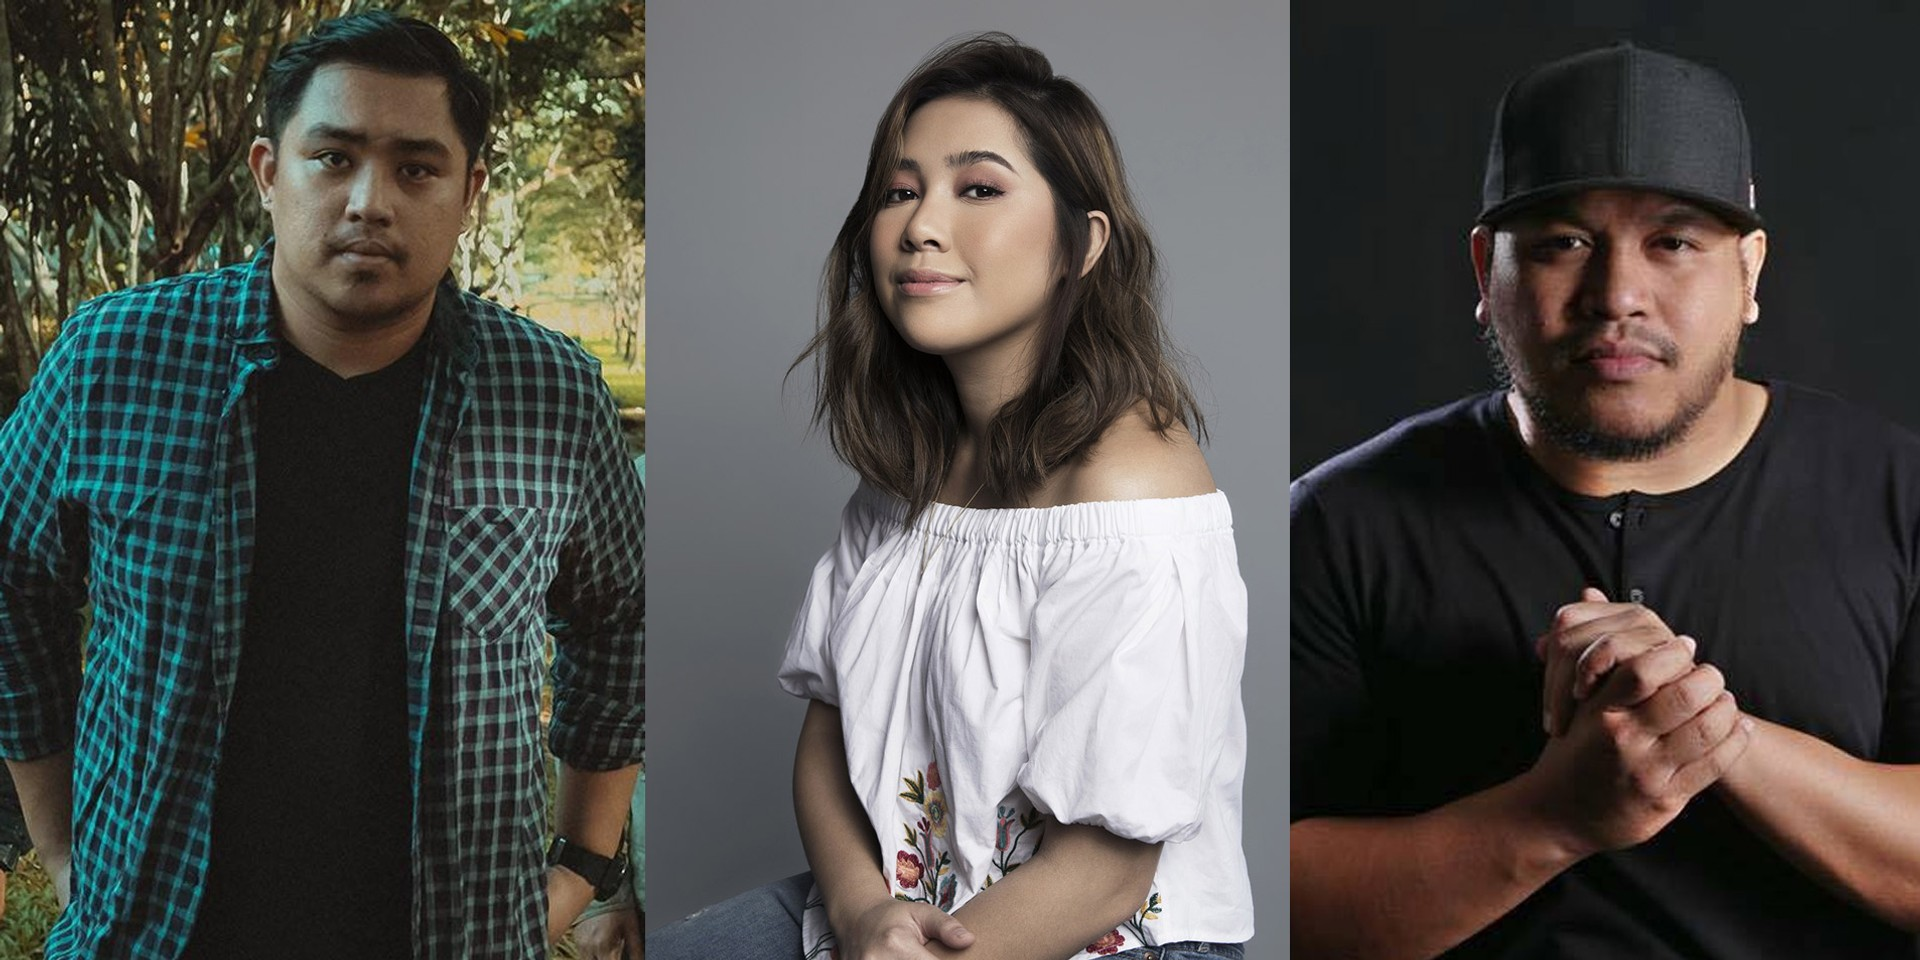 December Avenue, Moira Dela Torre, Quest kick off the holiday season with Christmas carols